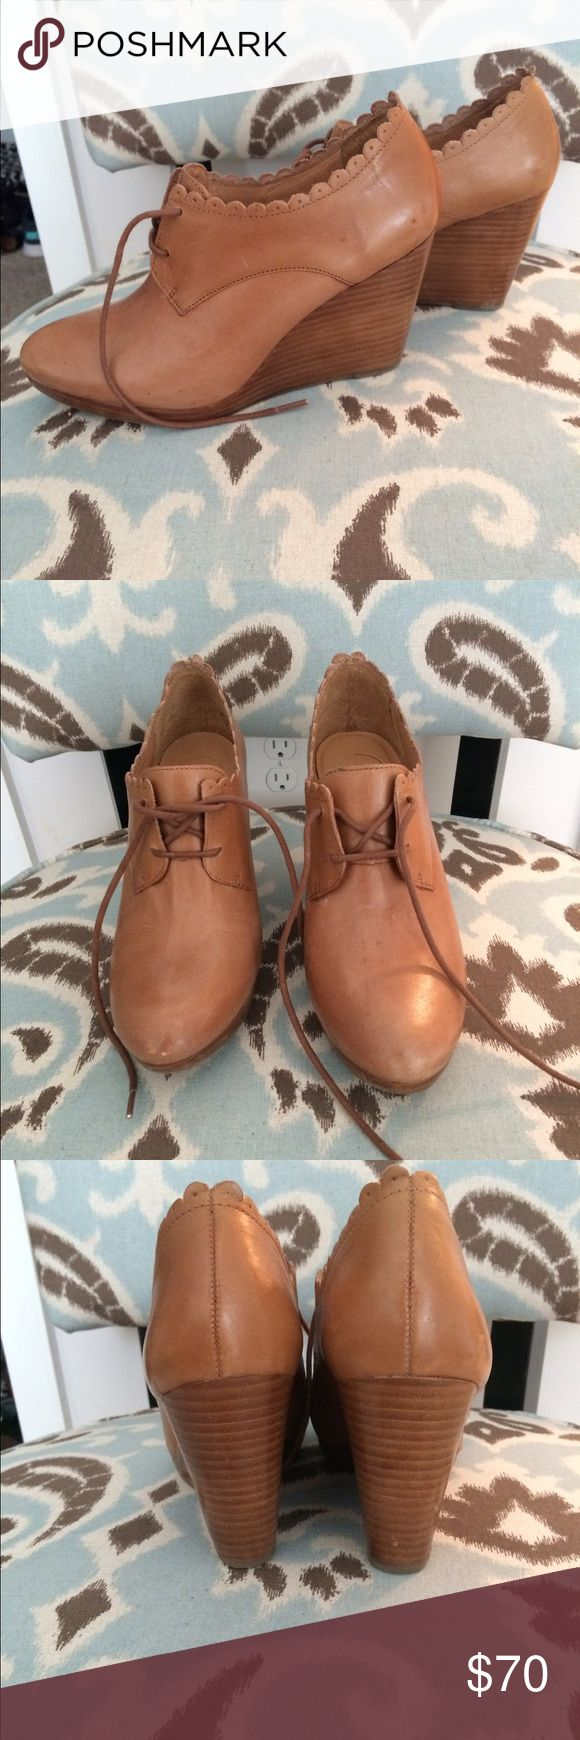 Jack Rogers Olivia Oxford wedge, worn once Worn once, in great condition. Minor wear. Jack Rogers Shoes Ankle Boots & Booties